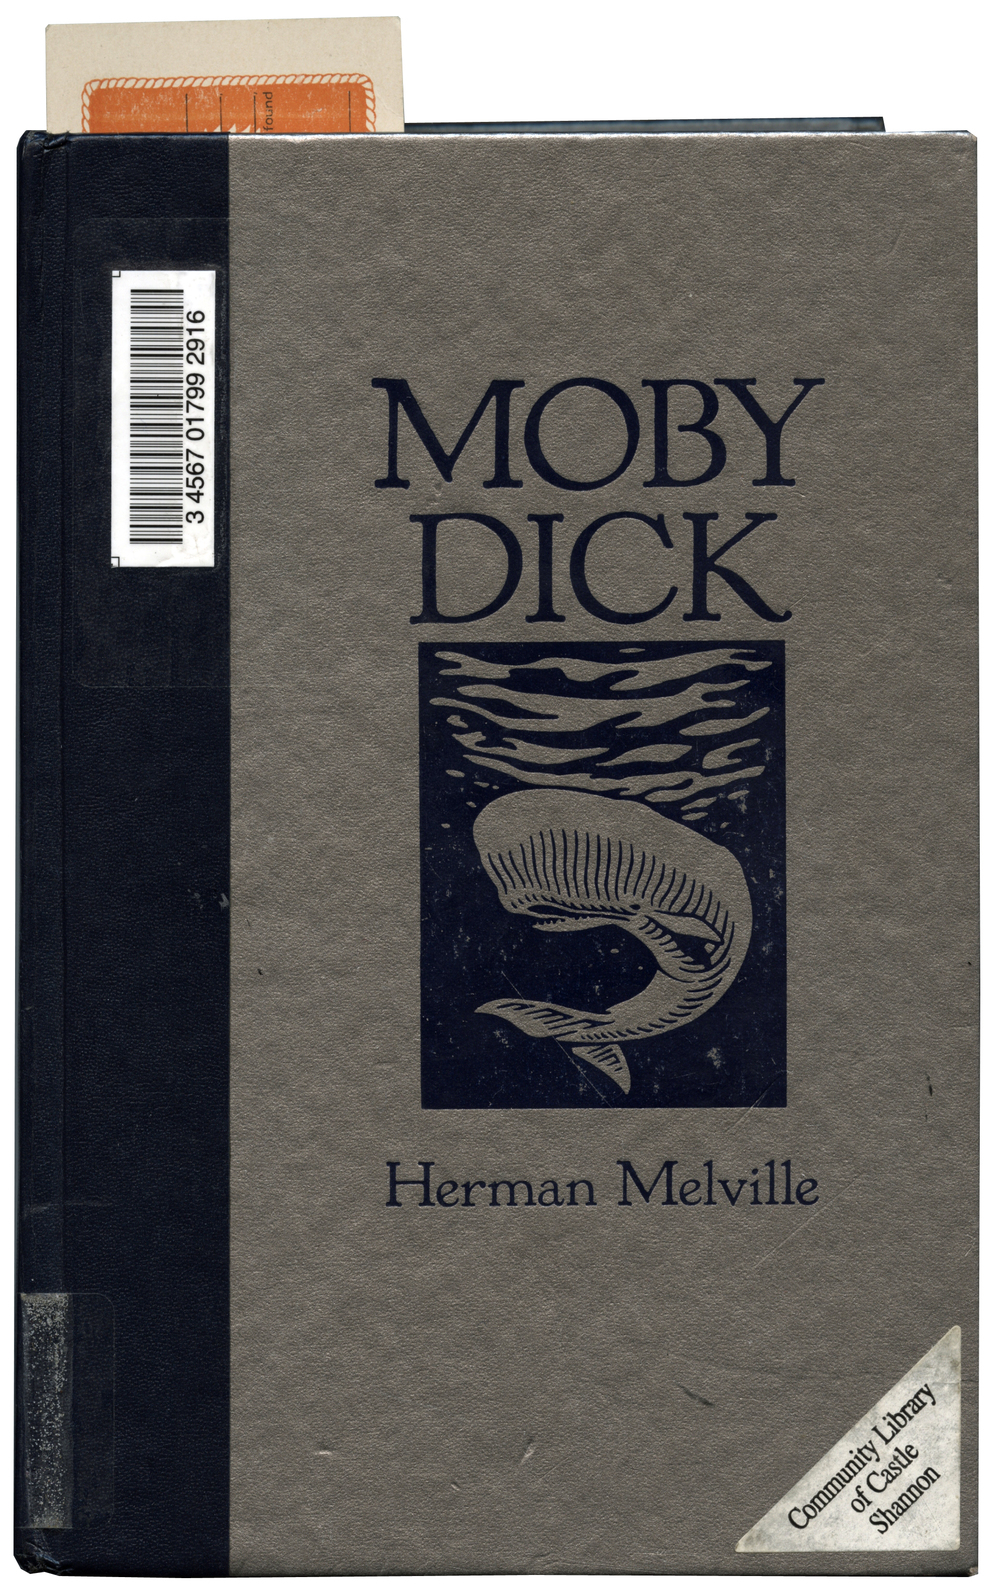 gift_1_moby_dick.jpg